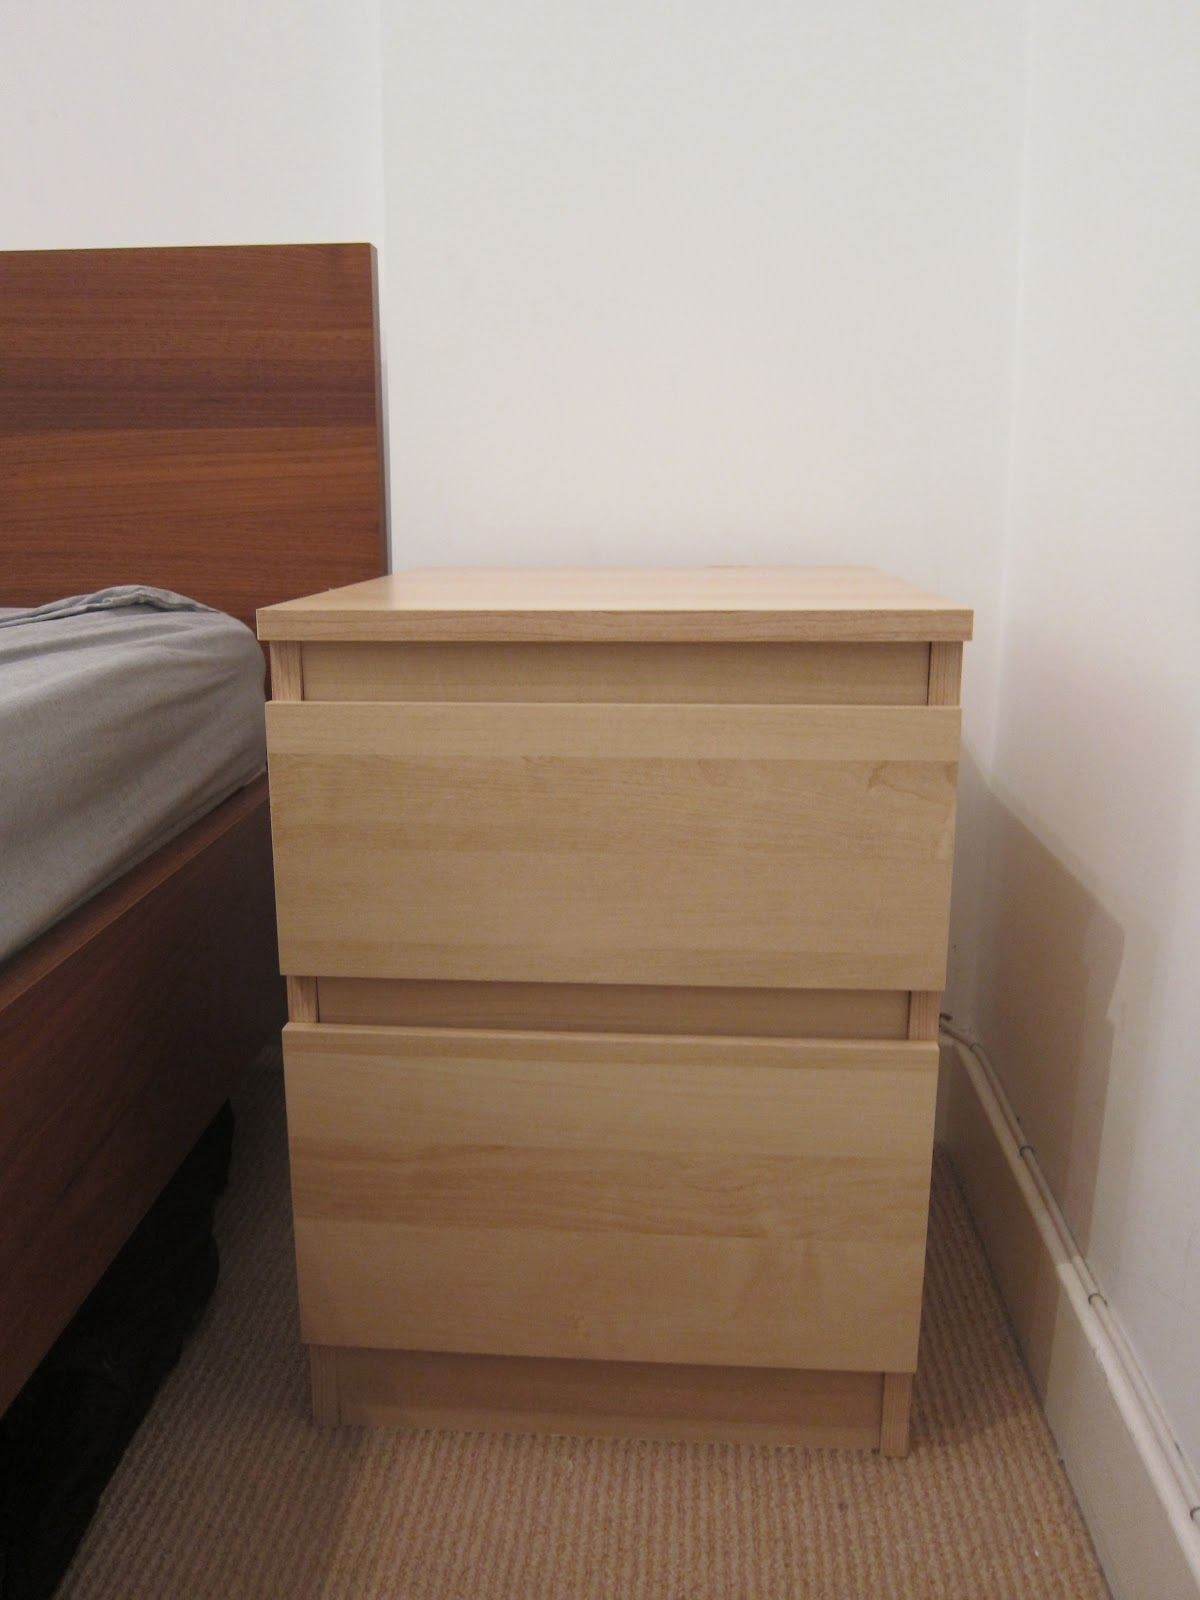 malm bedside table instructions